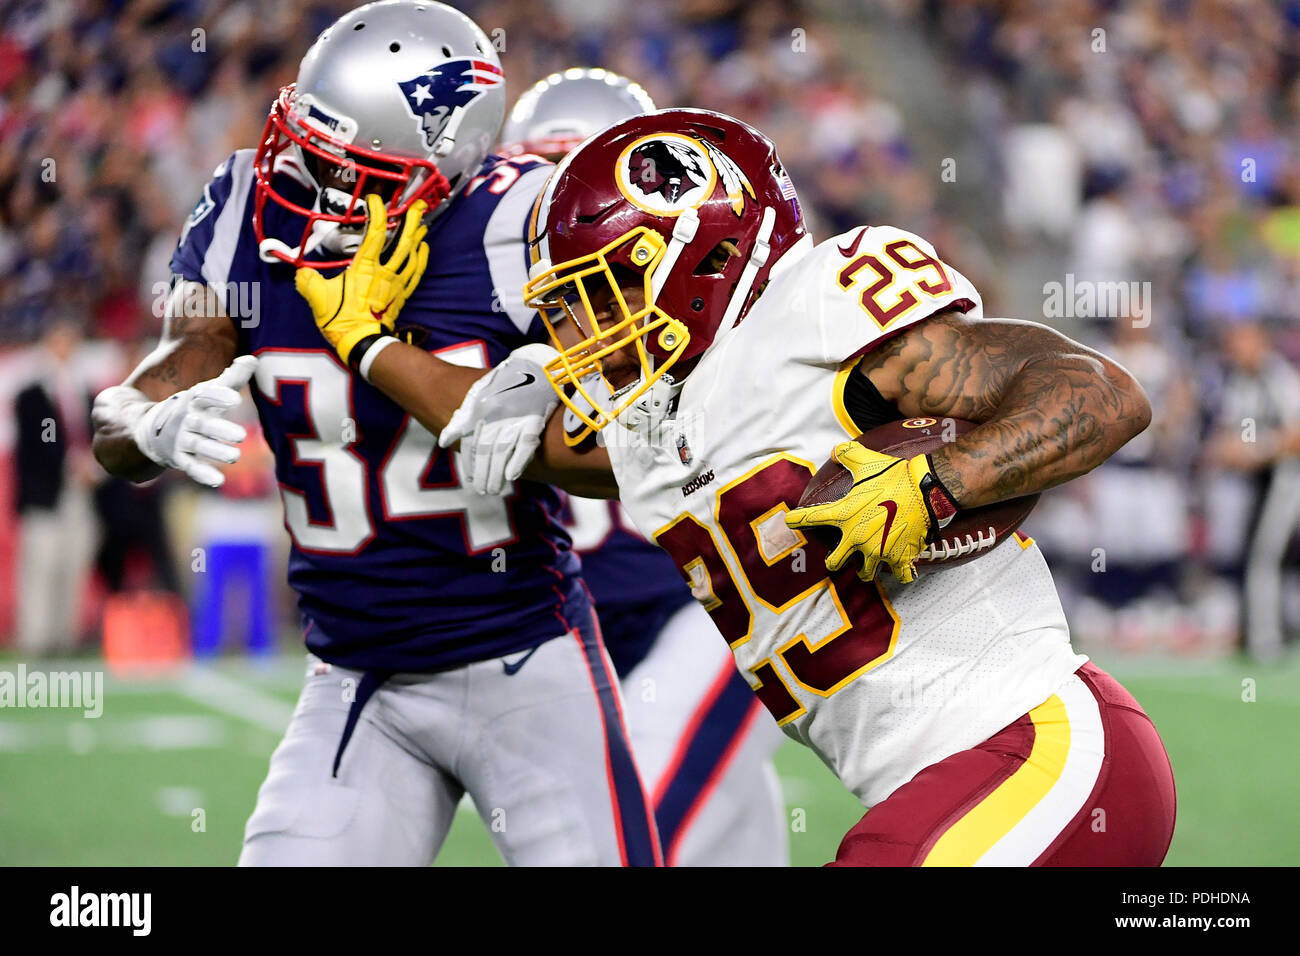 August 9, 2018: Washington Redskins running back Derrius Guice (29) stiff arms New England Patriots ...